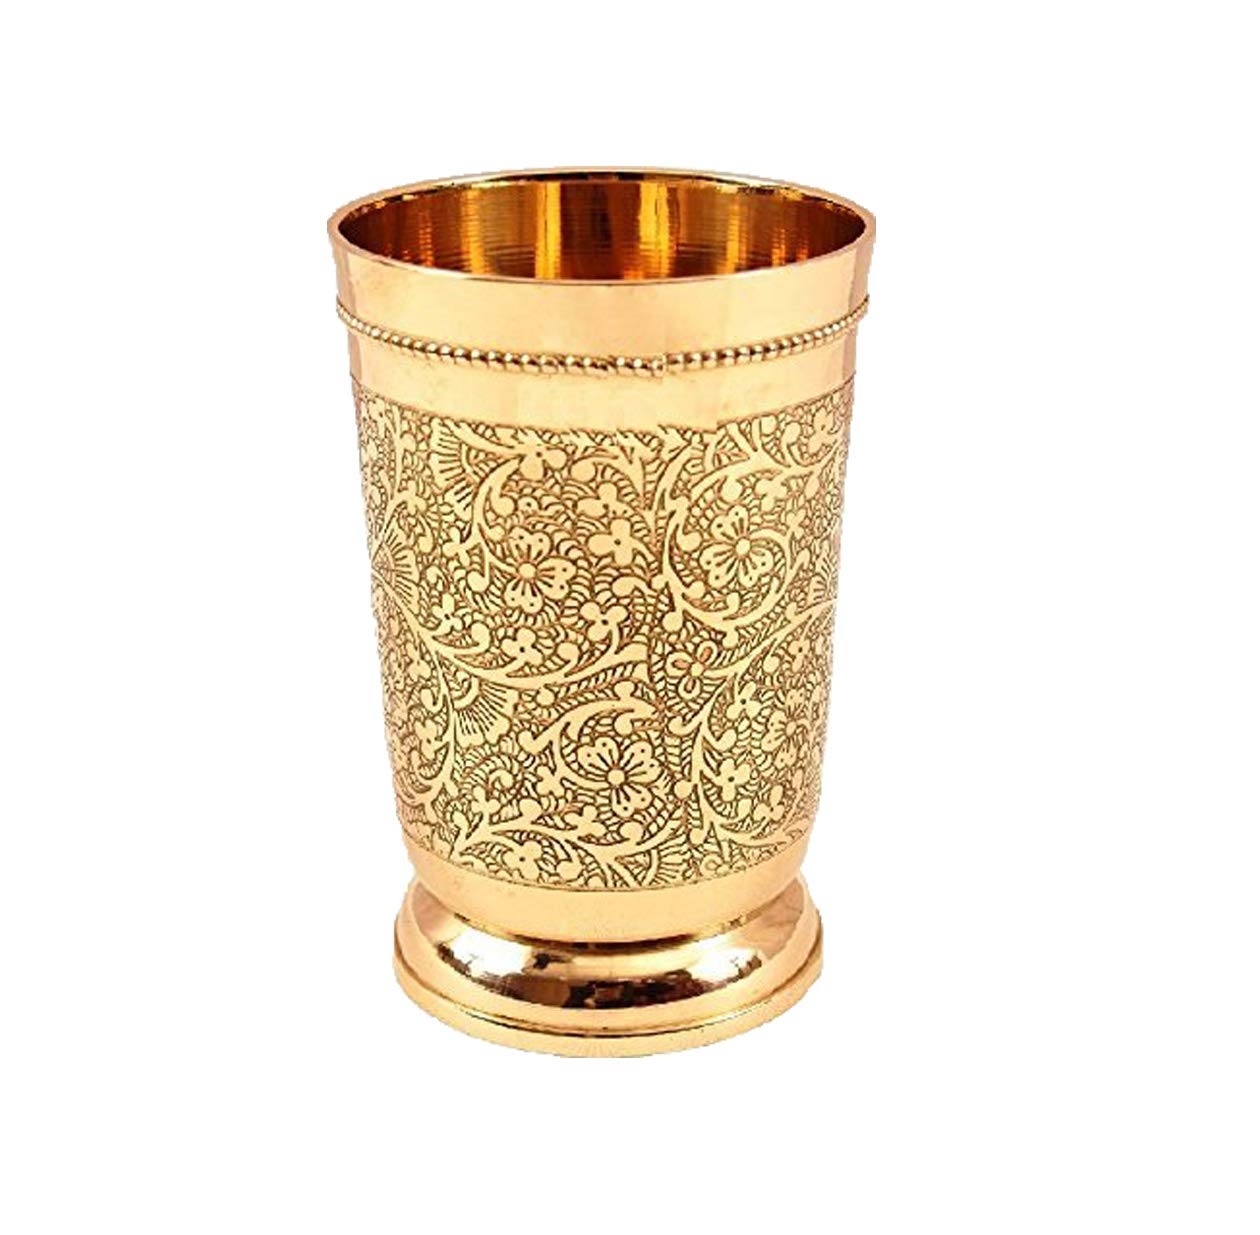 Embossed Designer Brass Mint Julep Cup Goblet Tumbler Capacity 12 Ounce Each by PARIJAT HANDICRAFT